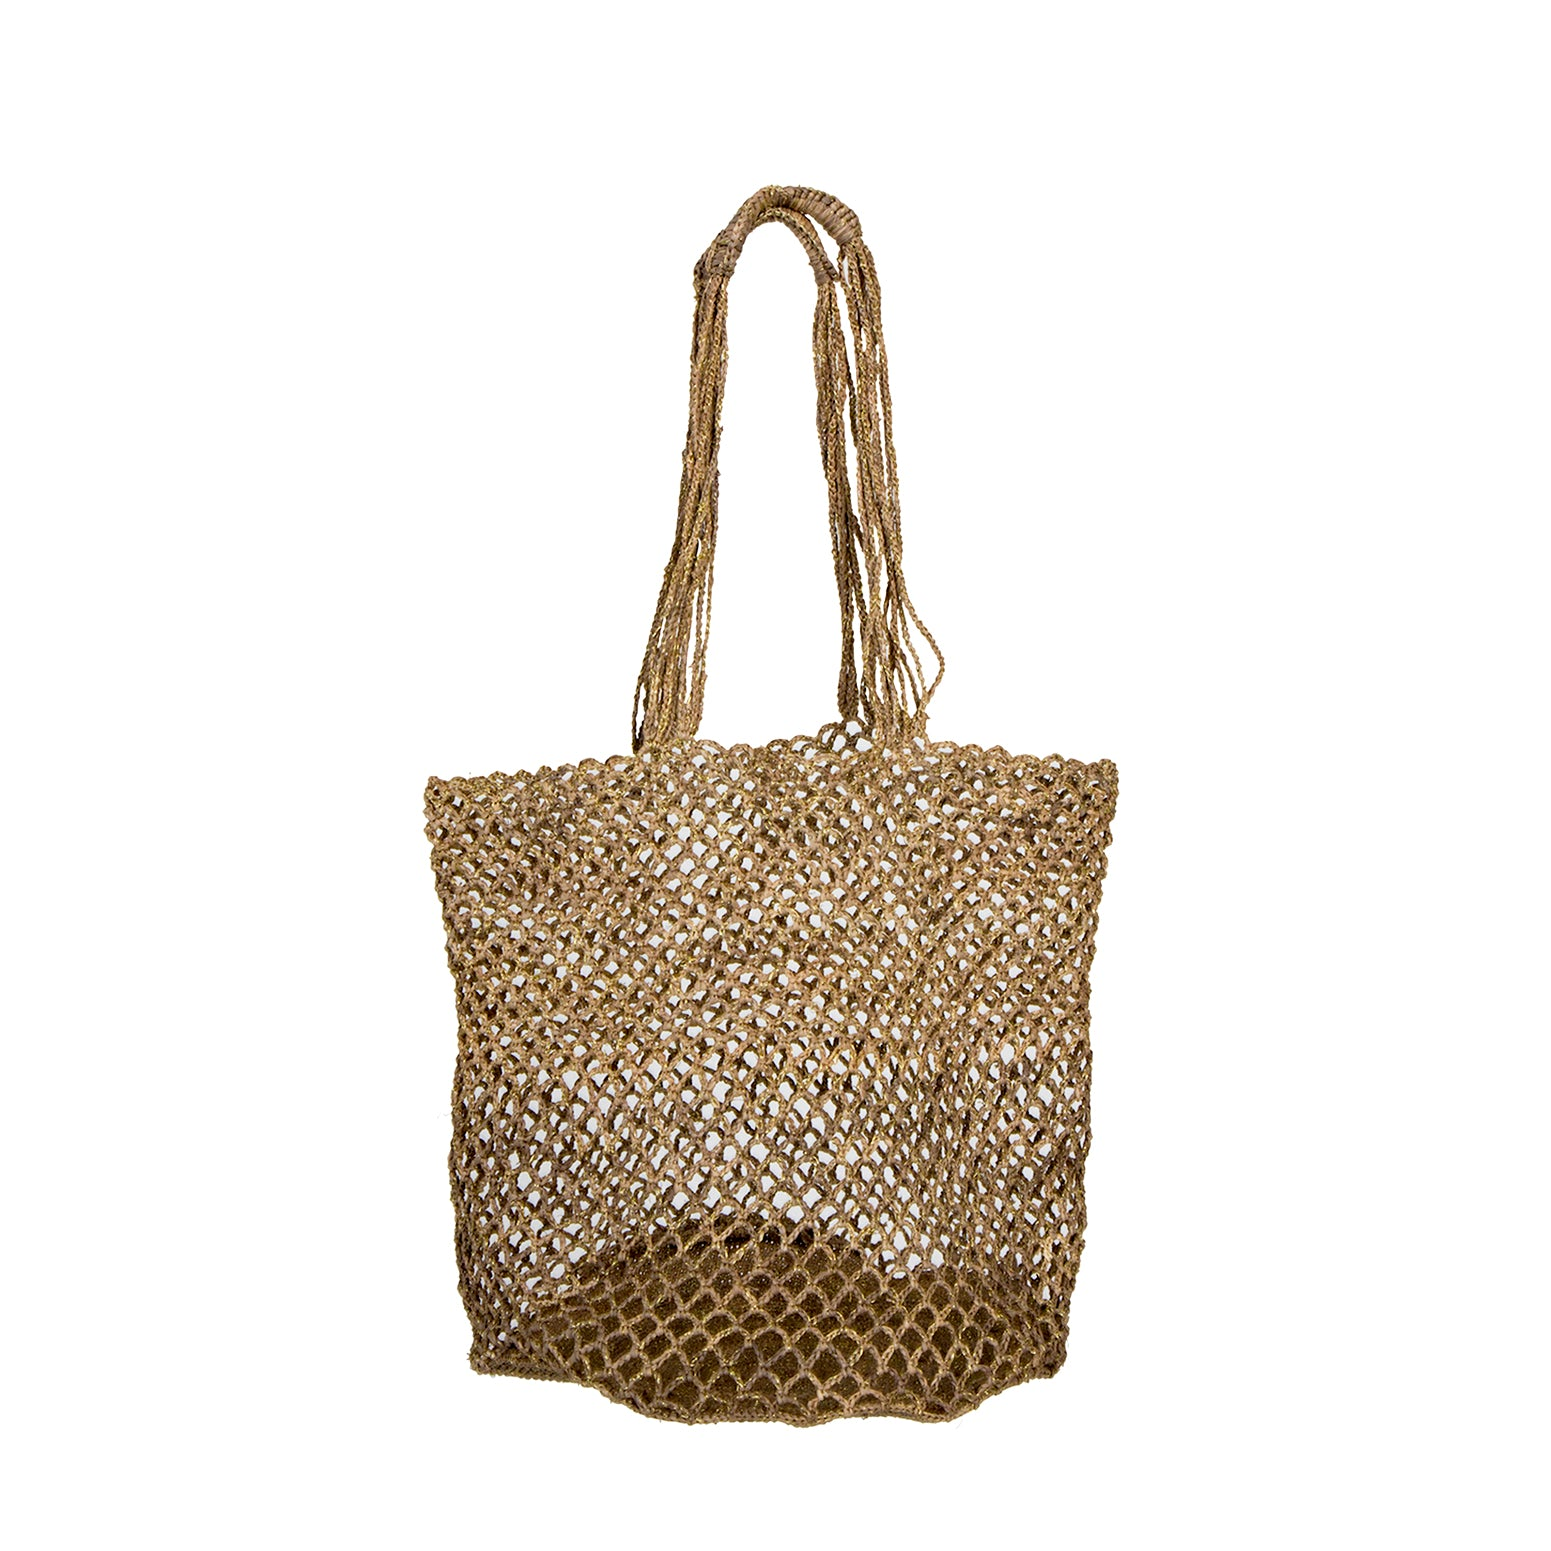 Holly Bag - Tea/gold